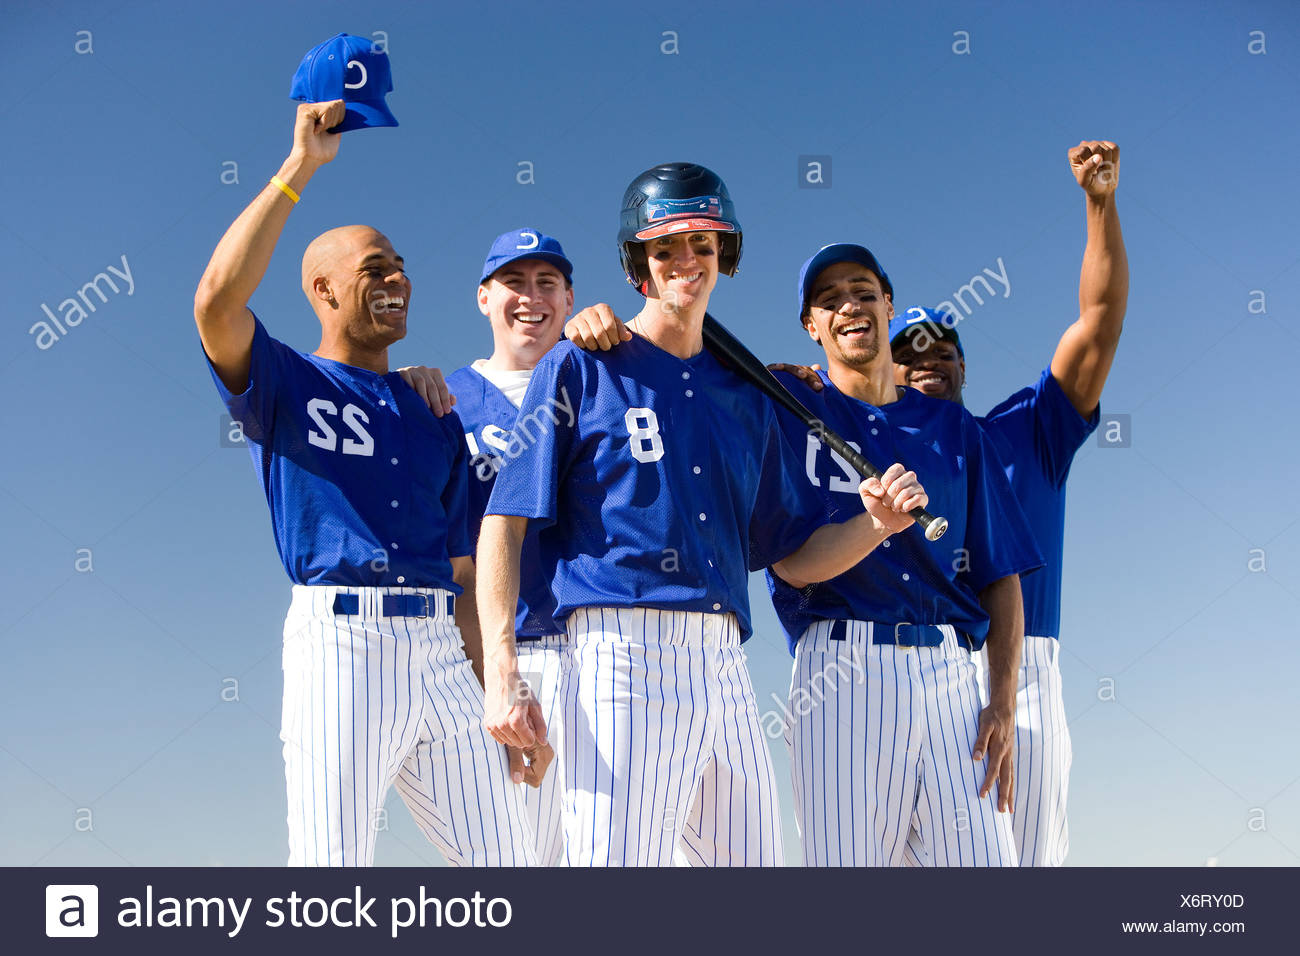 Baseball team, in blue uniforms, celebrating victory post match, arms up, smiling, front view, portrait - Stock Image